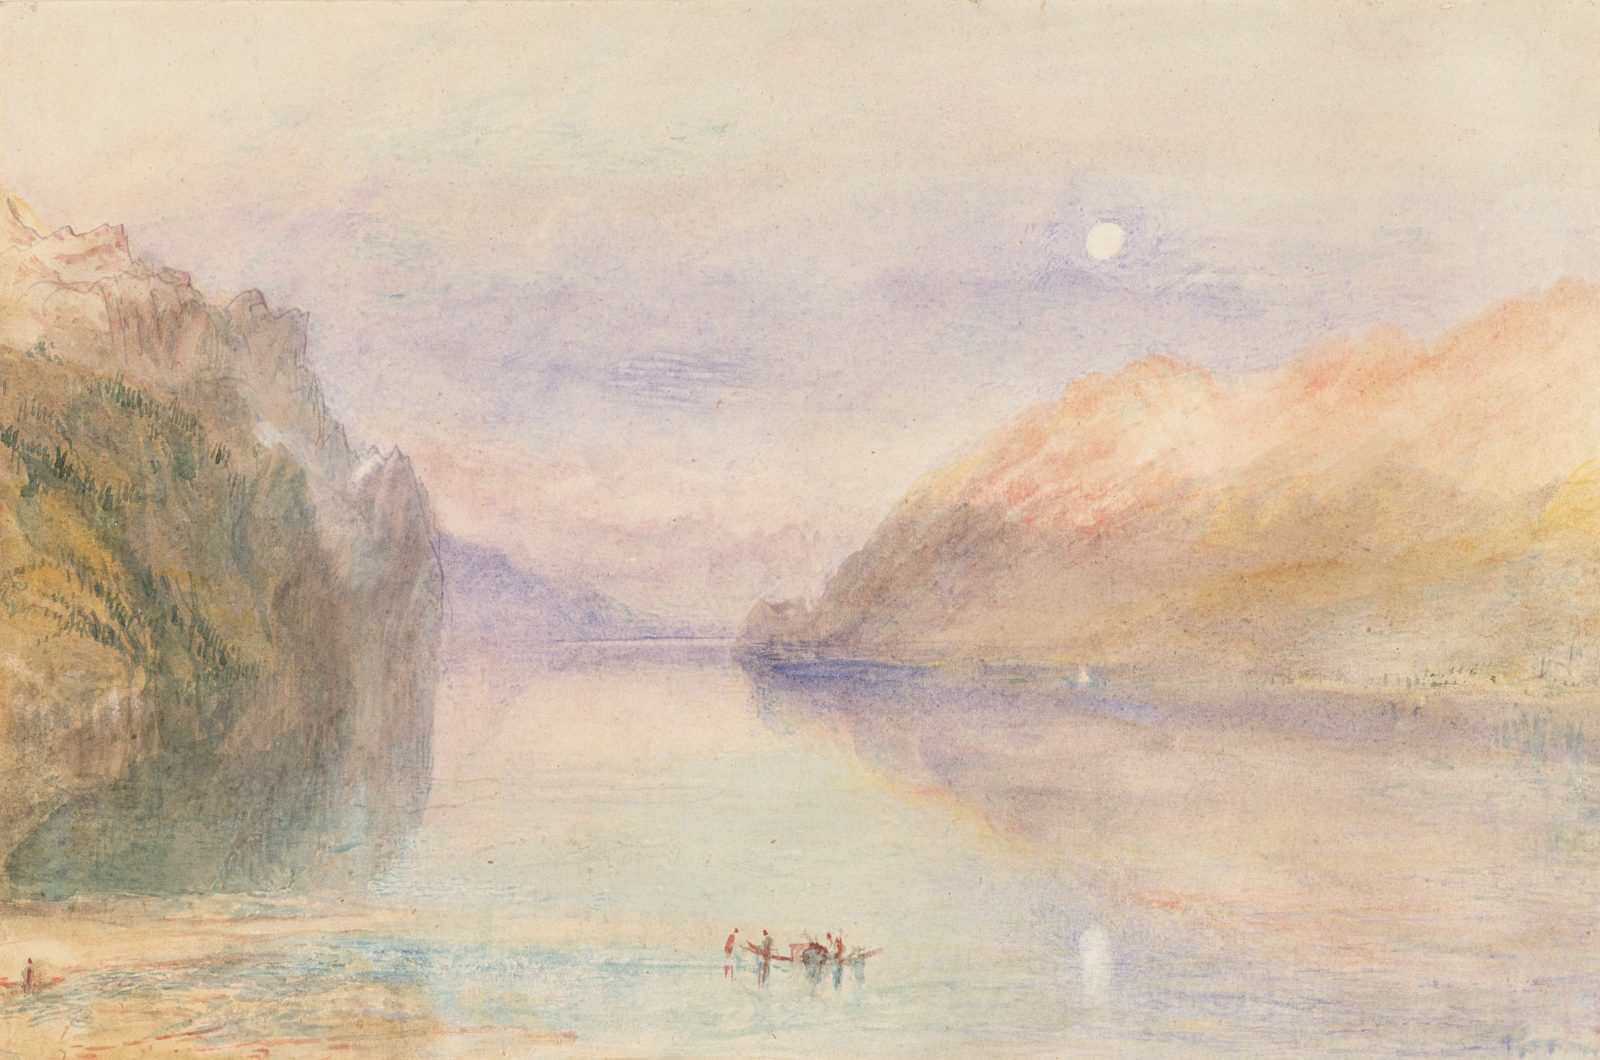 William Turner, A Swiss Lake